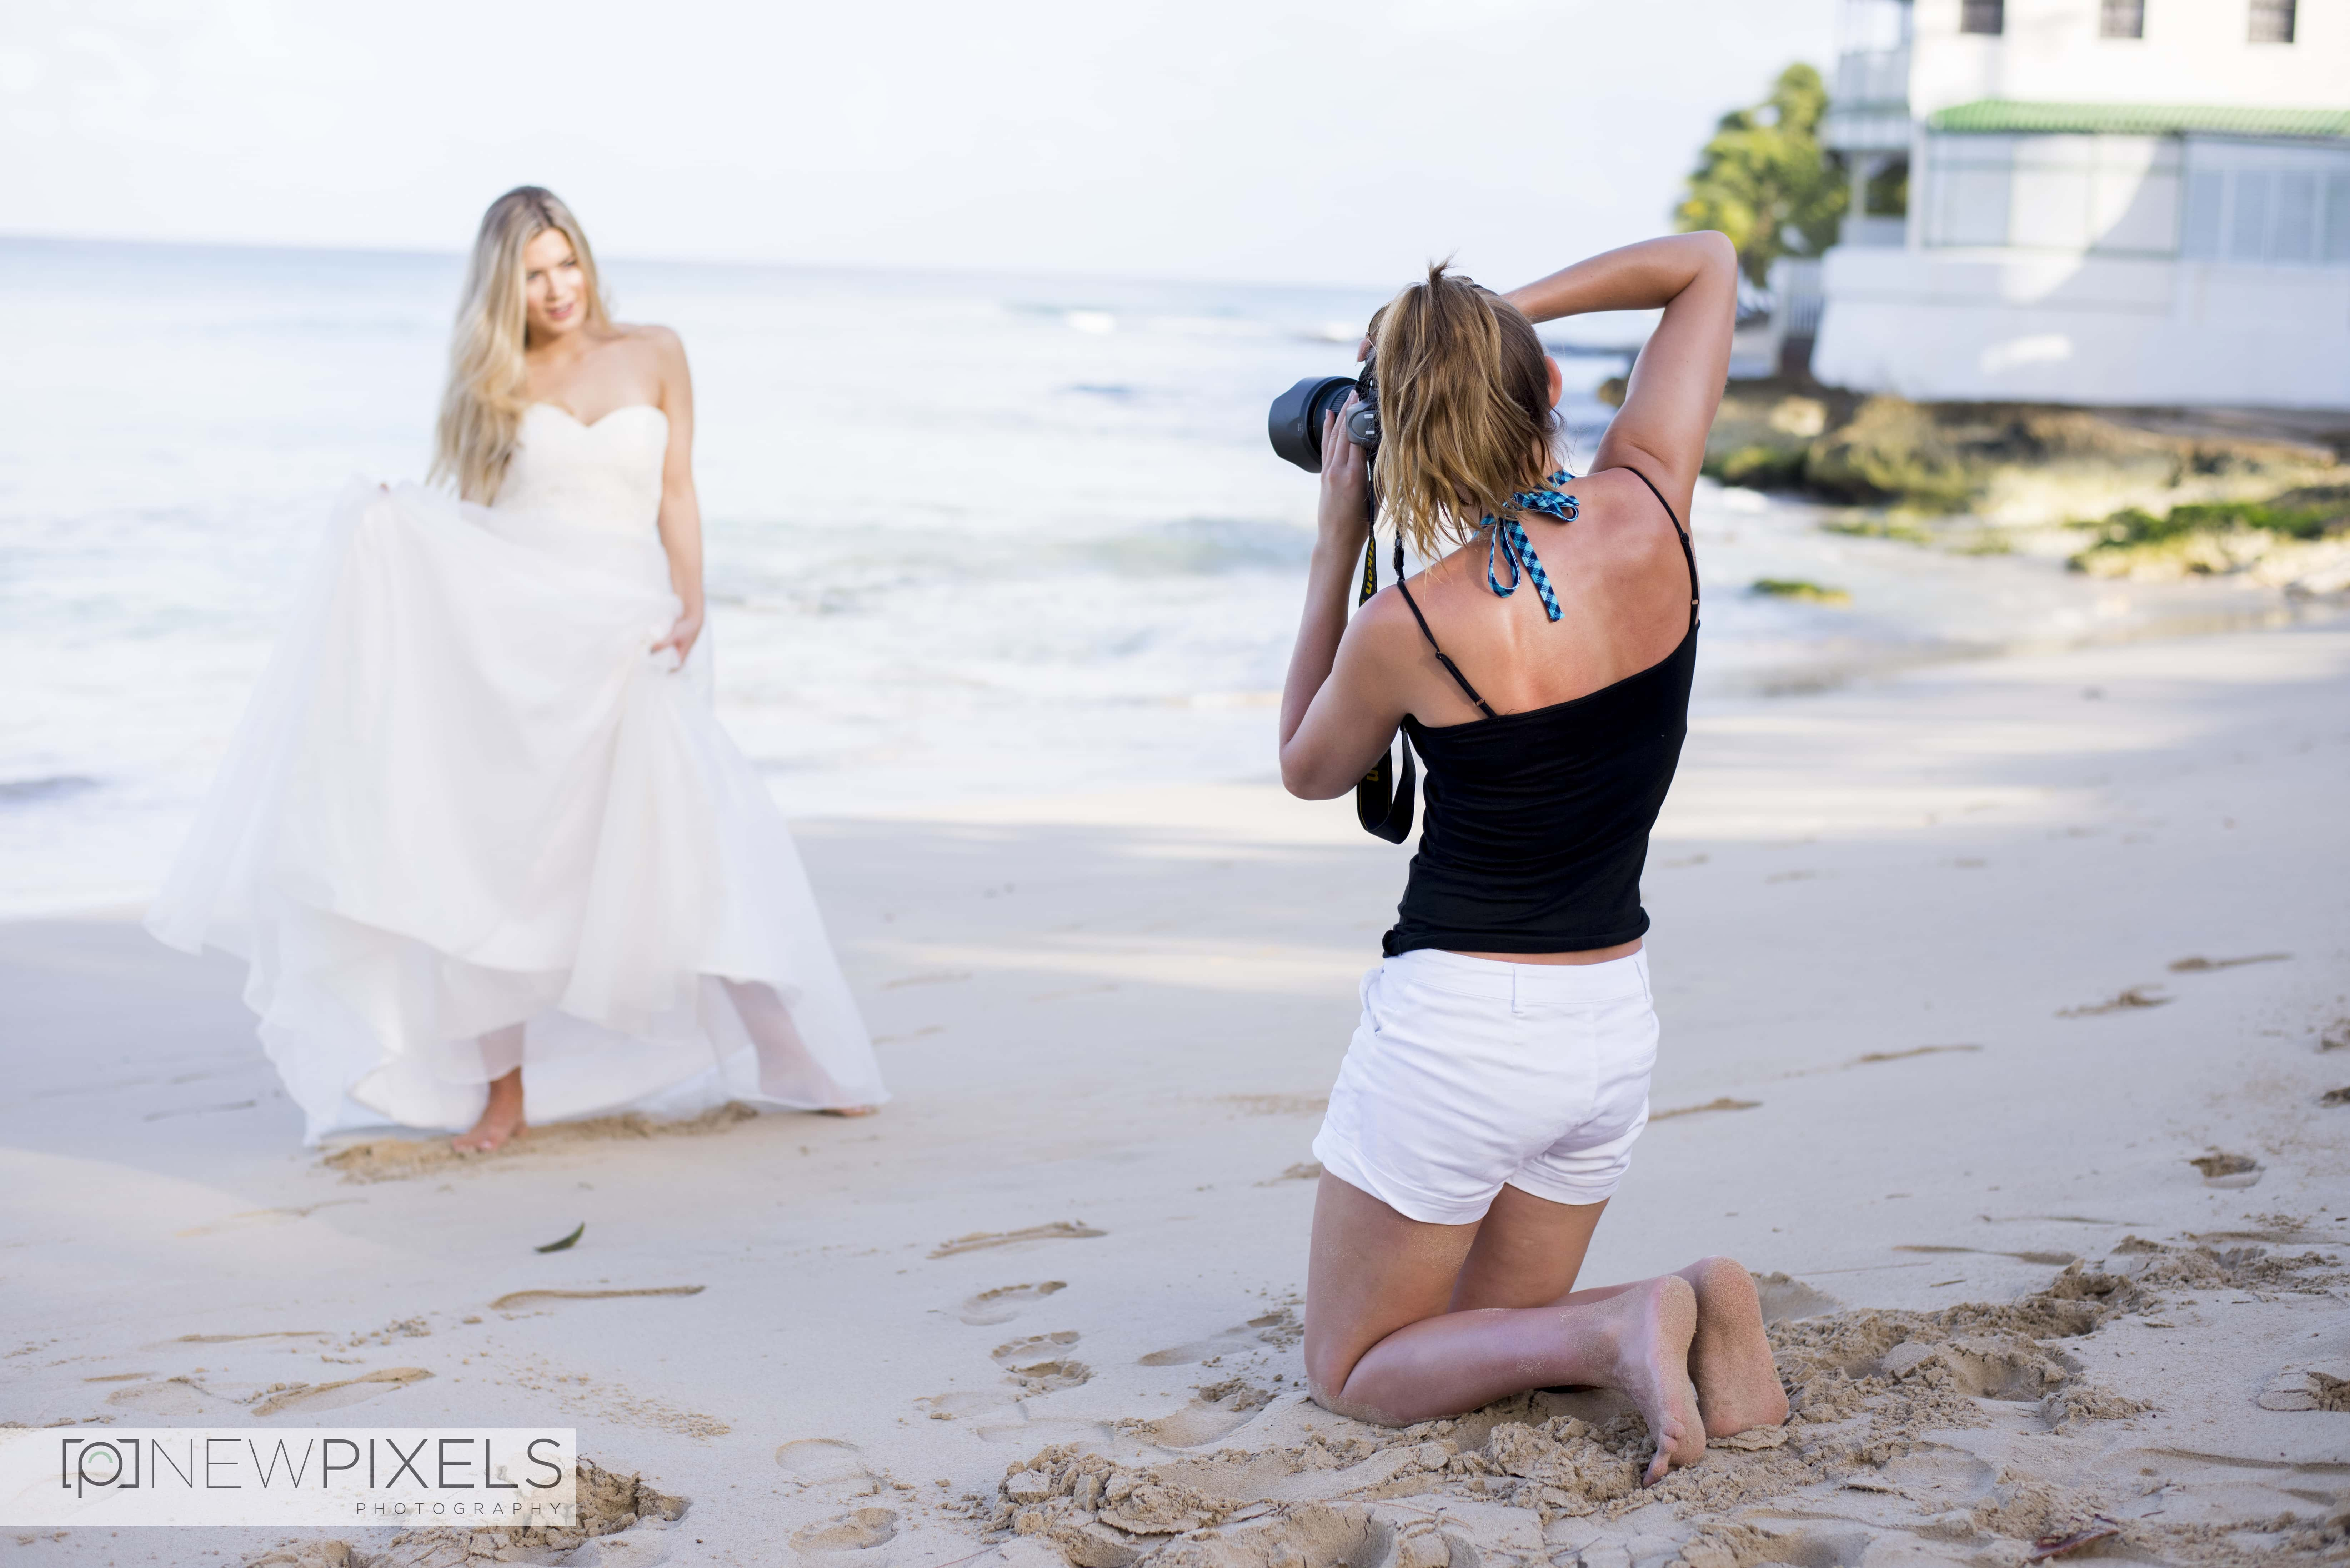 Behind_the_Scenes_Fashion_Shoot19